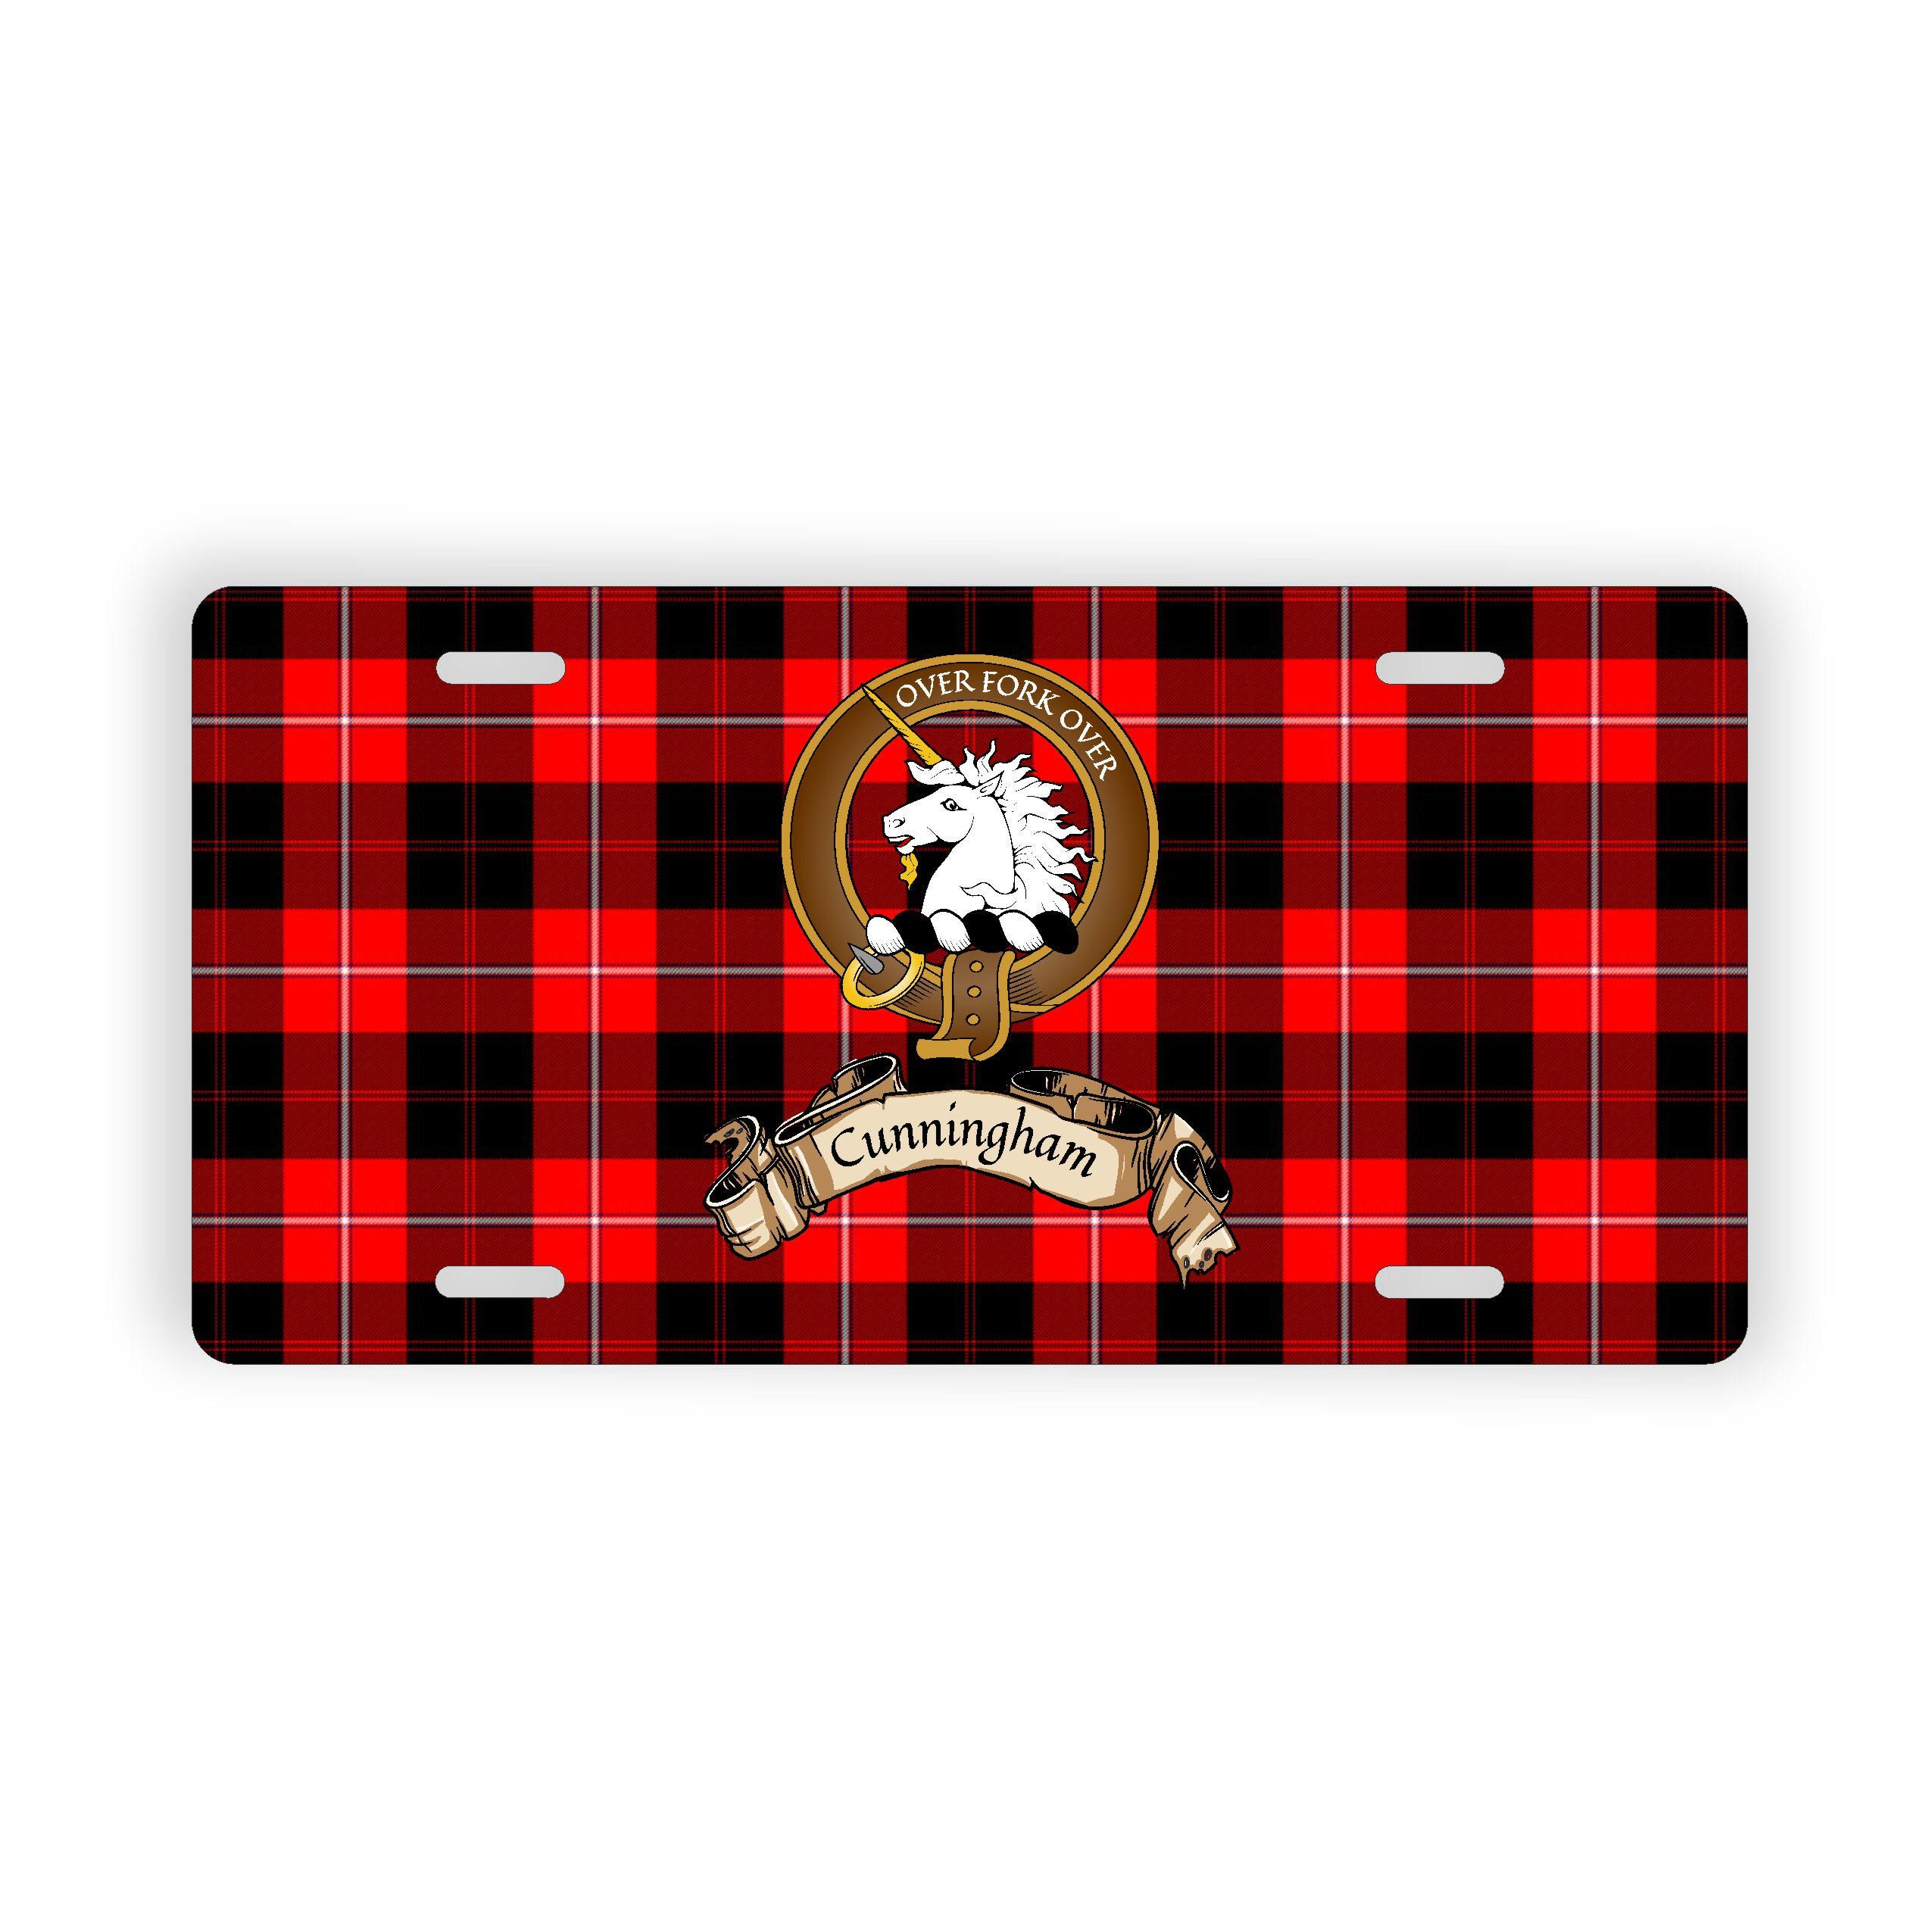 Montgomery Scottish Clan Tartan Novelty Auto Plate Tag Family Name Plate